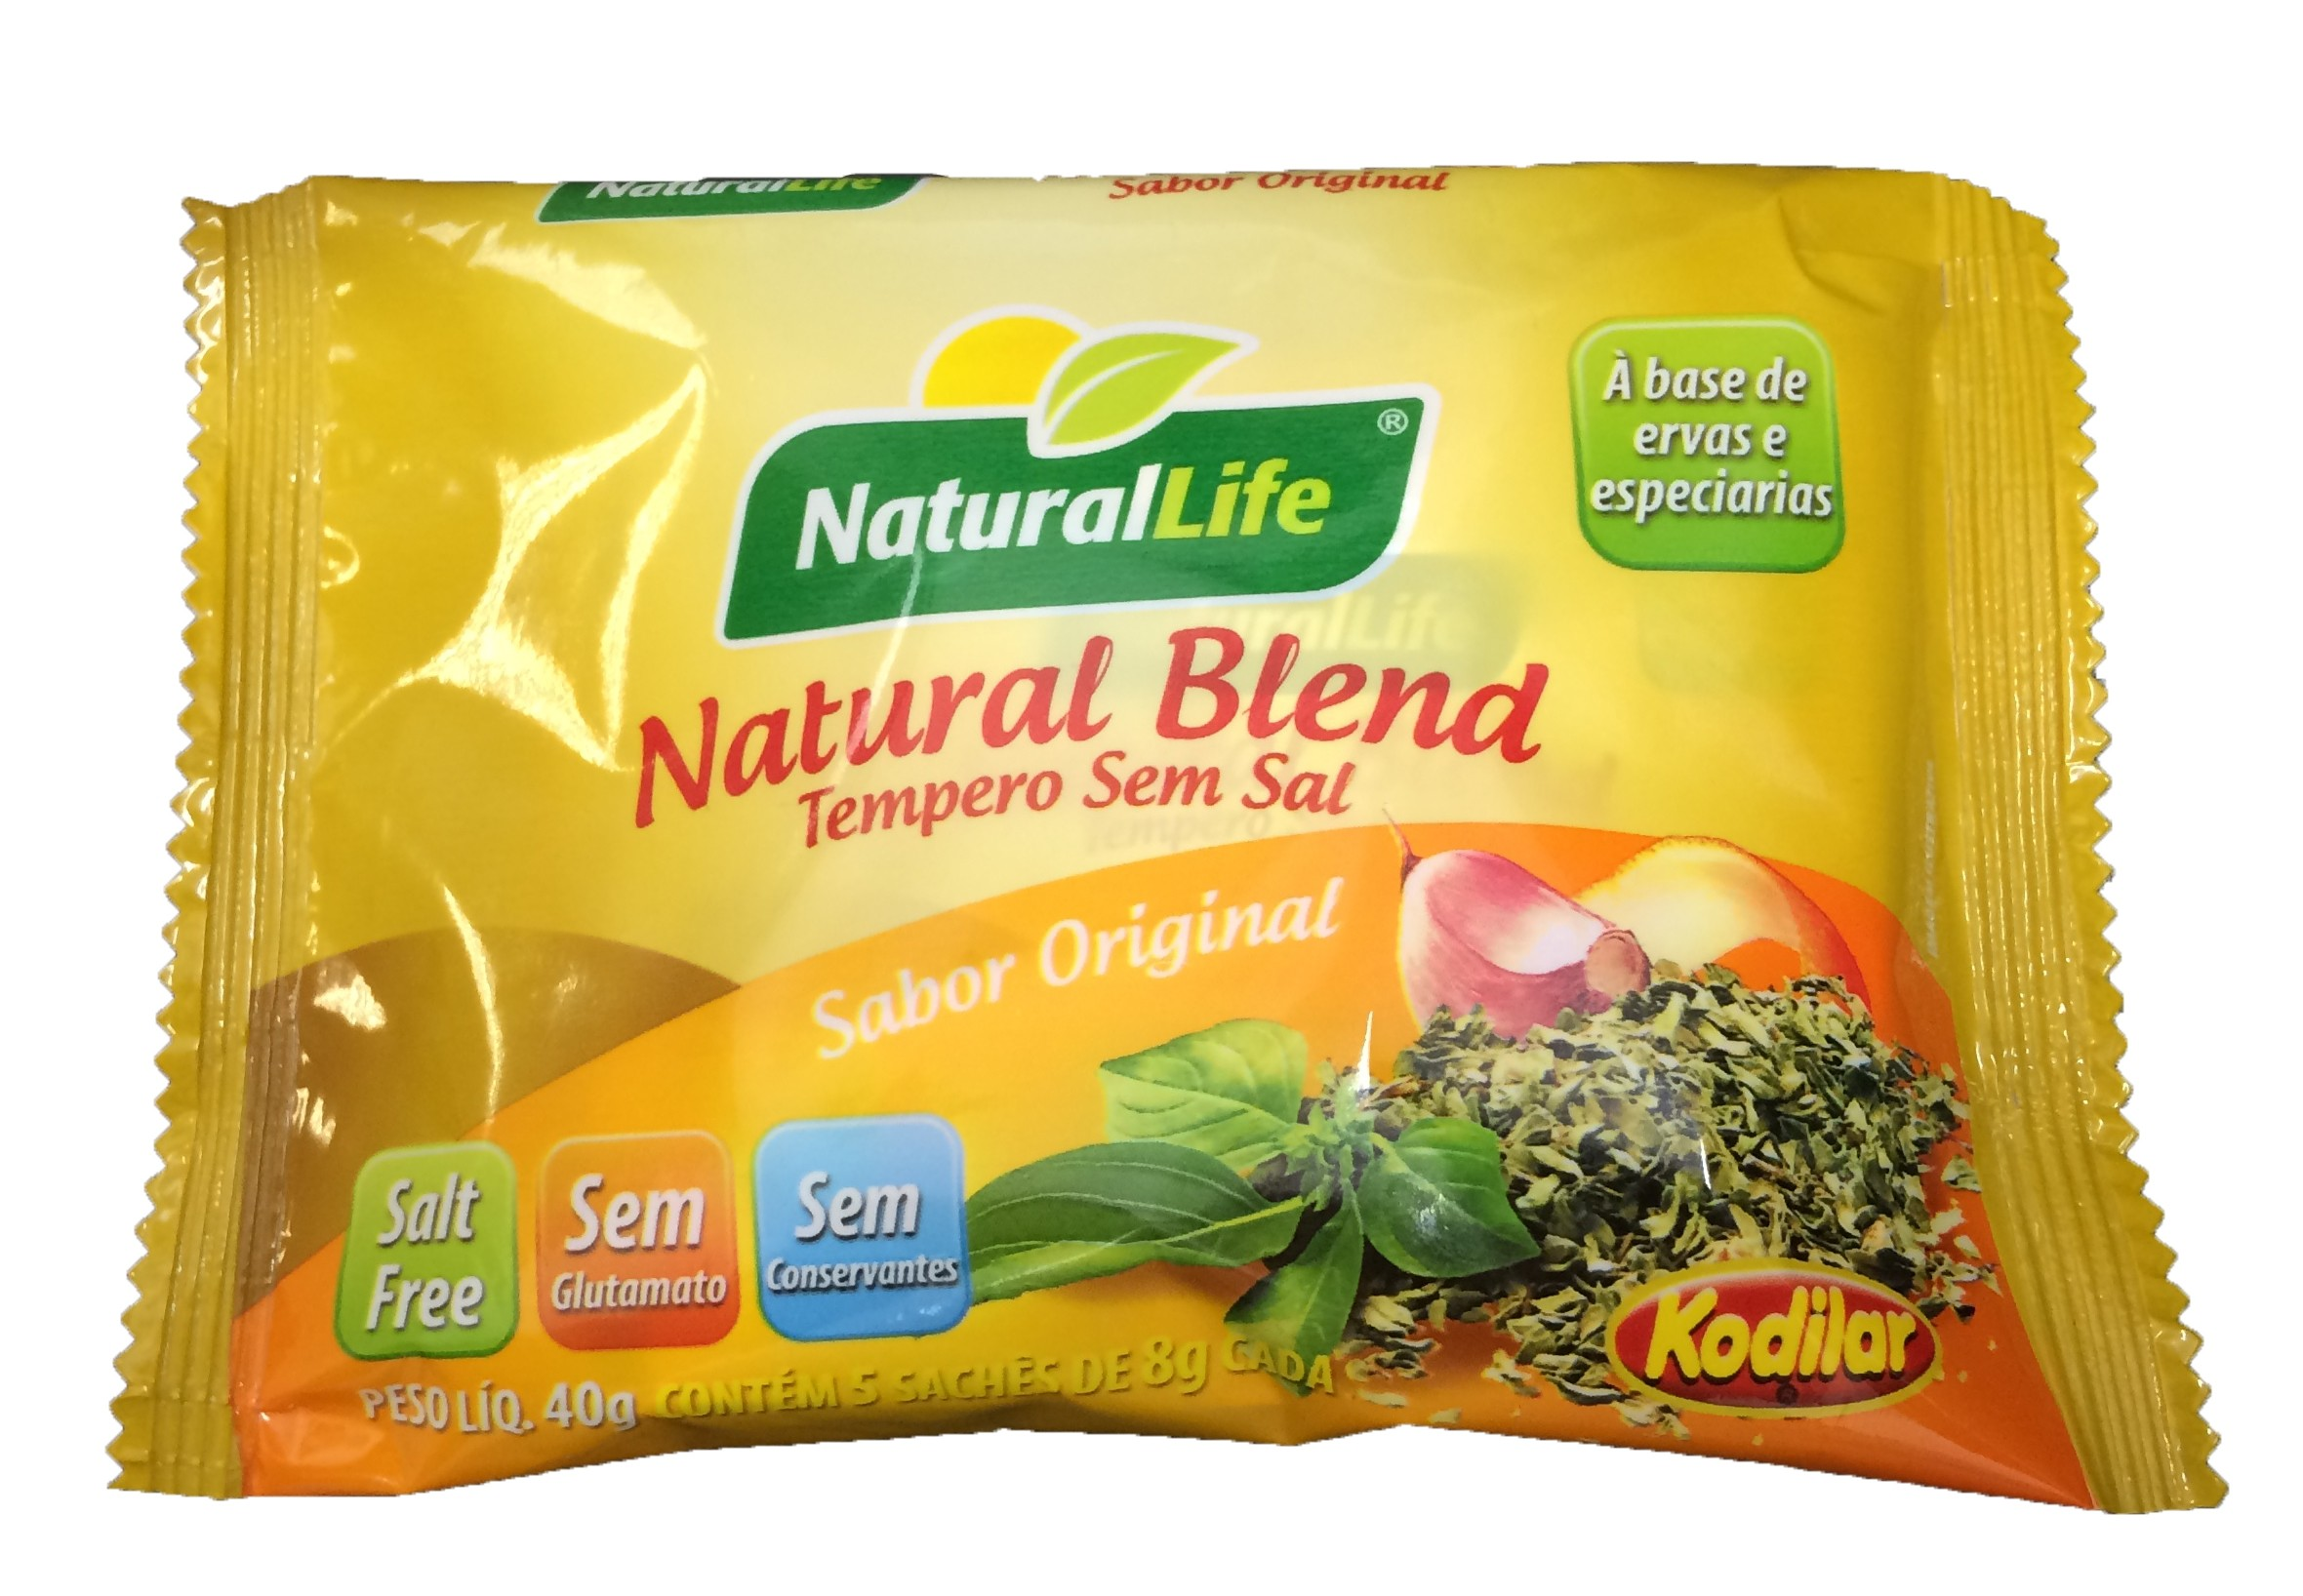 Natural Blend Tempero Sem Sal - Sachê - 40g - NaturalLife